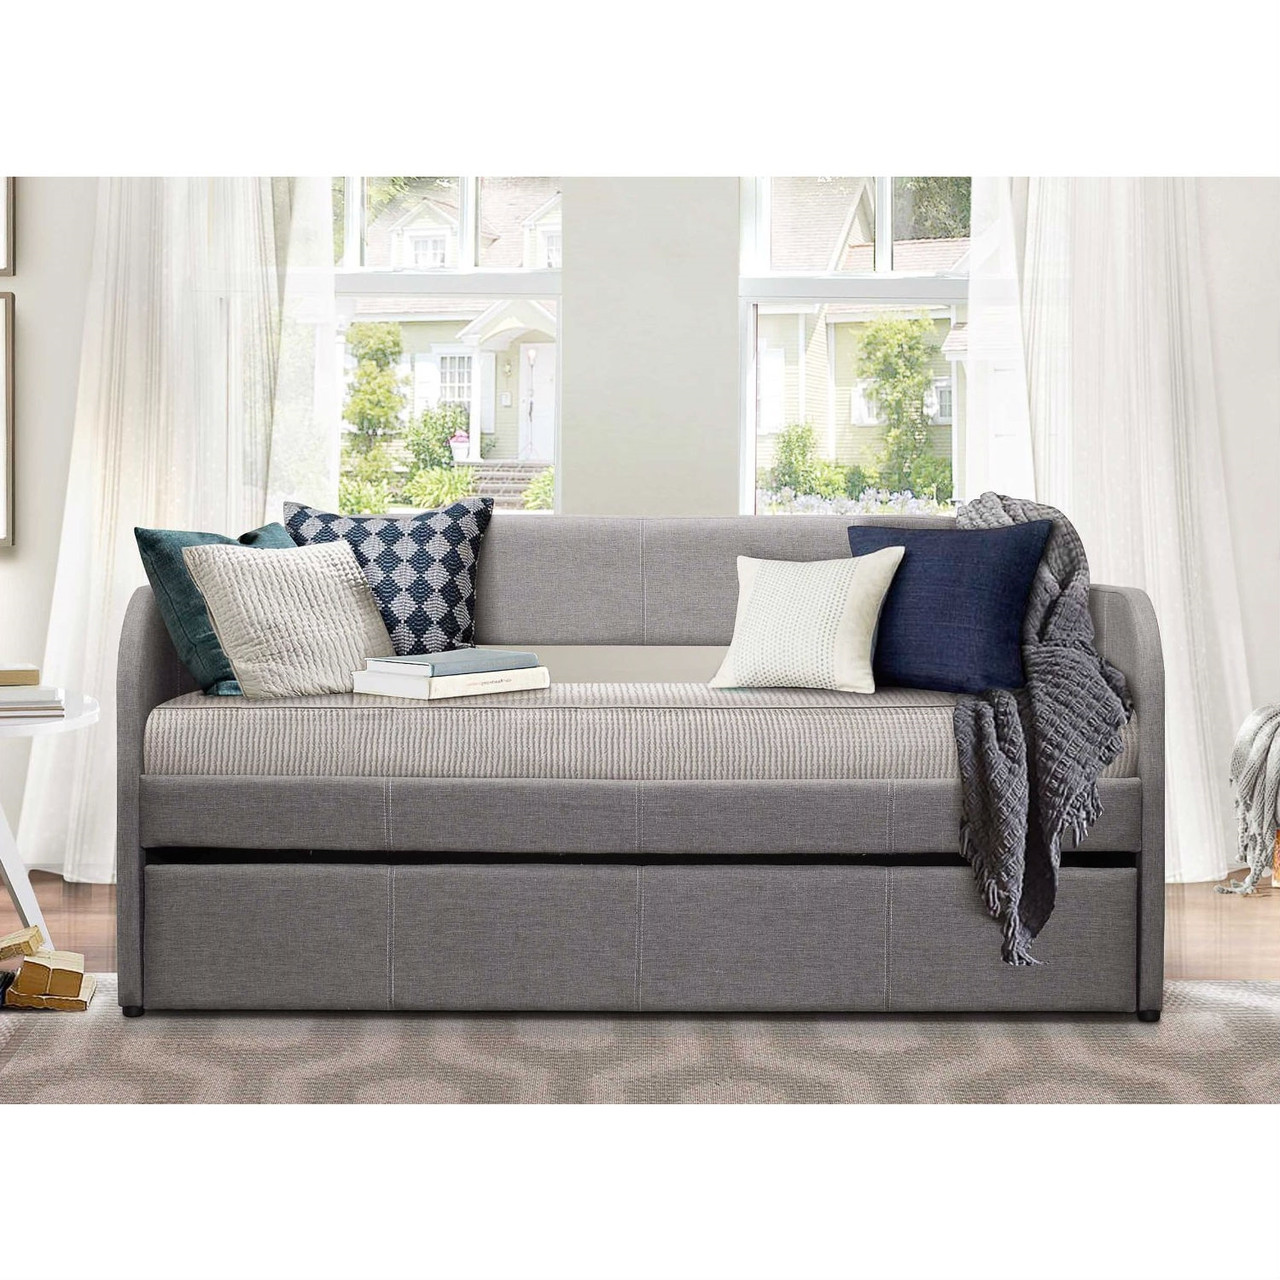 - Twin Modern Grey Fabric Upholstered Daybed With Trundle